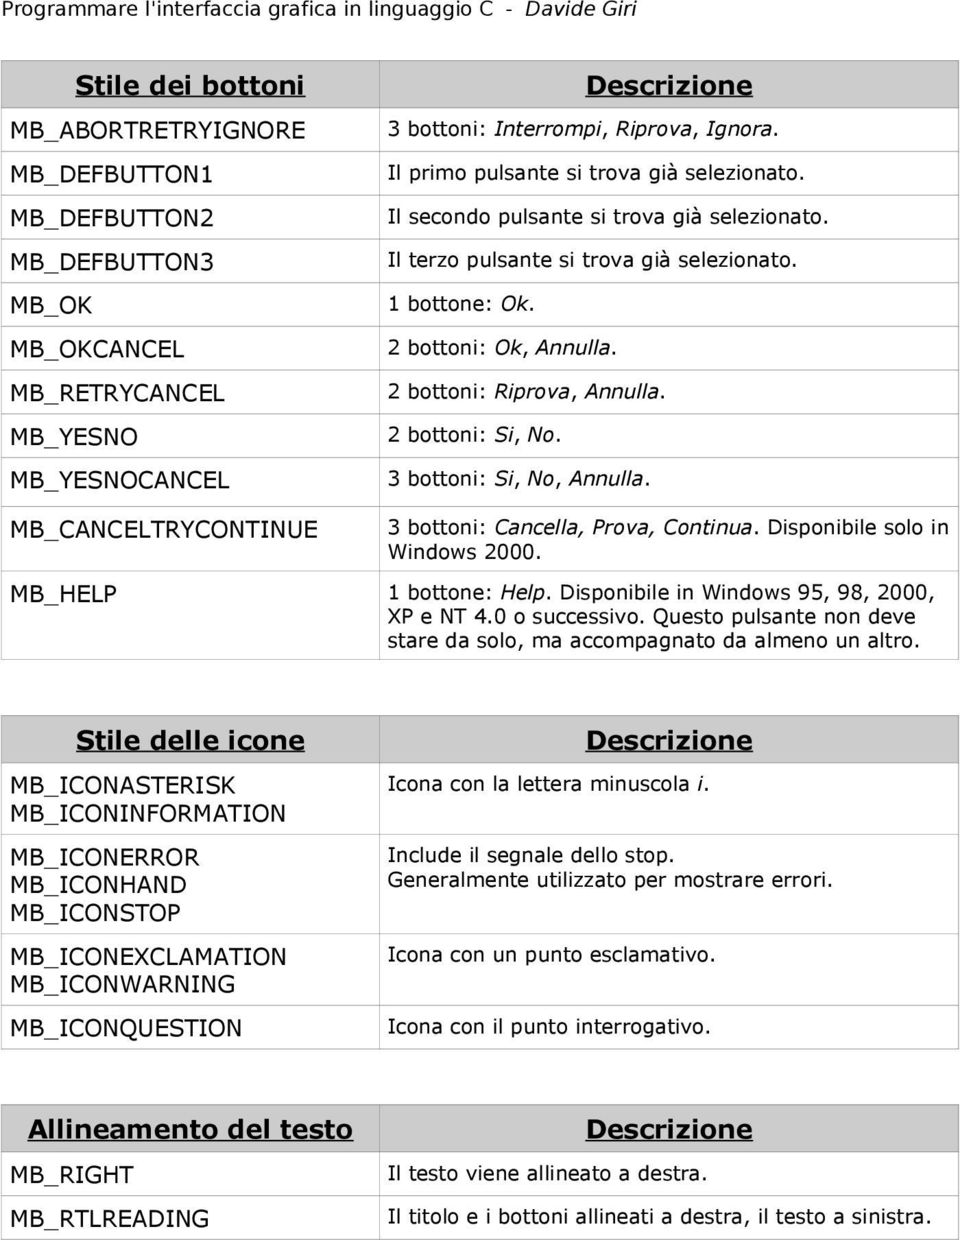 2 bottoni: Riprova, Annulla. 2 bottoni: Si, No. 3 bottoni: Si, No, Annulla. MB_CANCELTRYCONTINUE 3 bottoni: Cancella, Prova, Continua. Disponibile solo in Windows 2000. MB_HELP 1 bottone: Help.